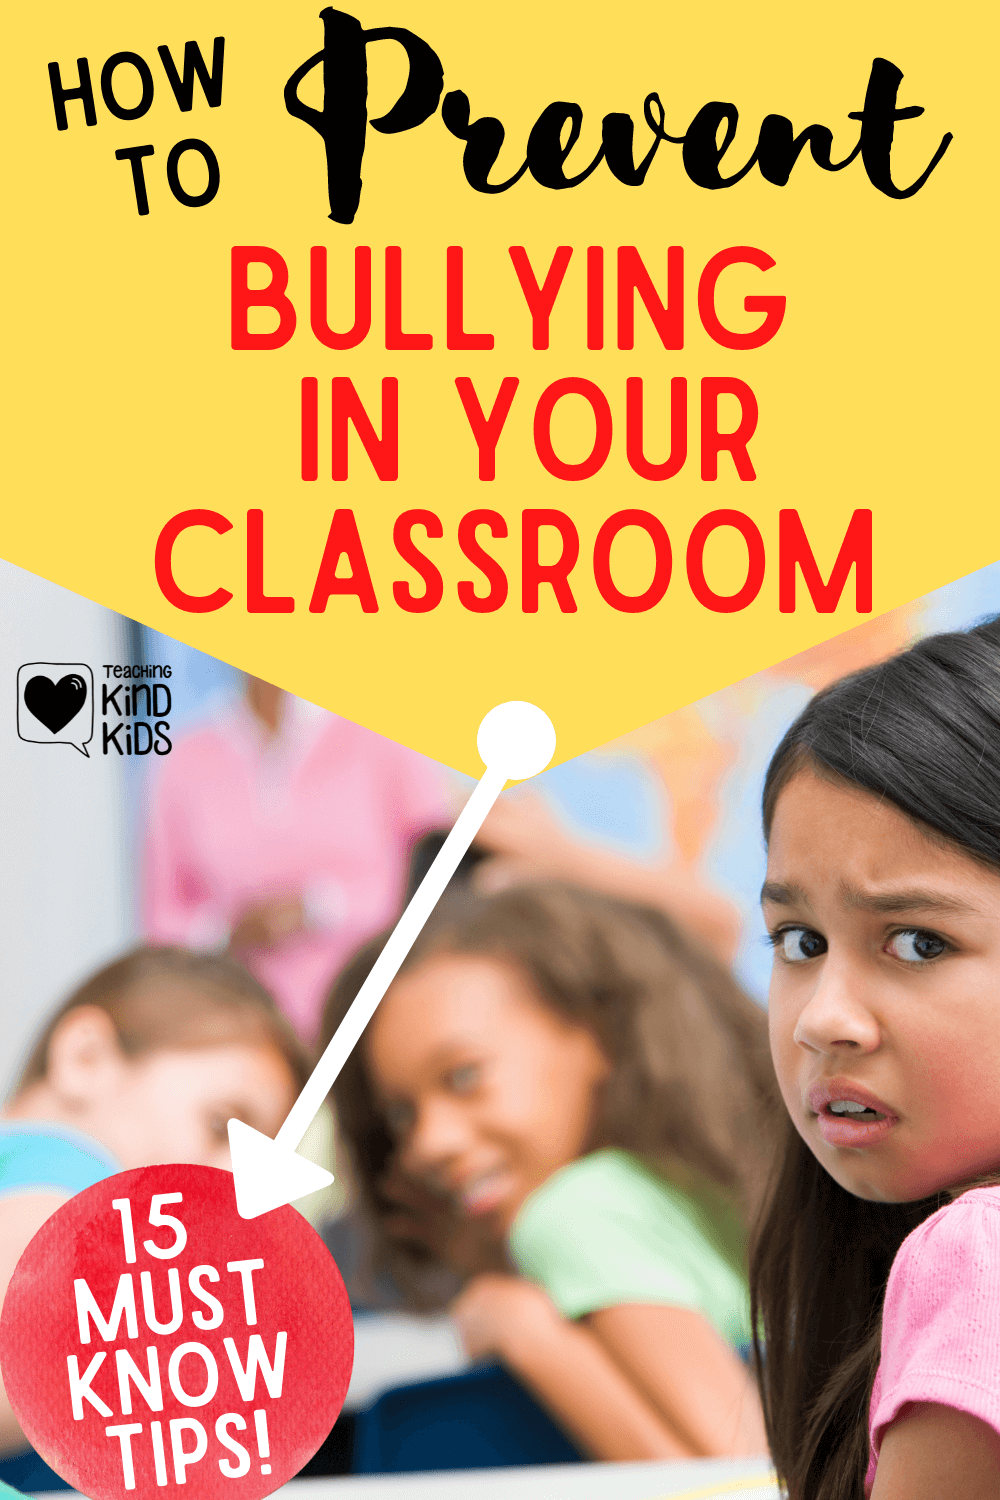 Educators can prevent bullying in the classroom by learning how to recognize and prevent bullying.